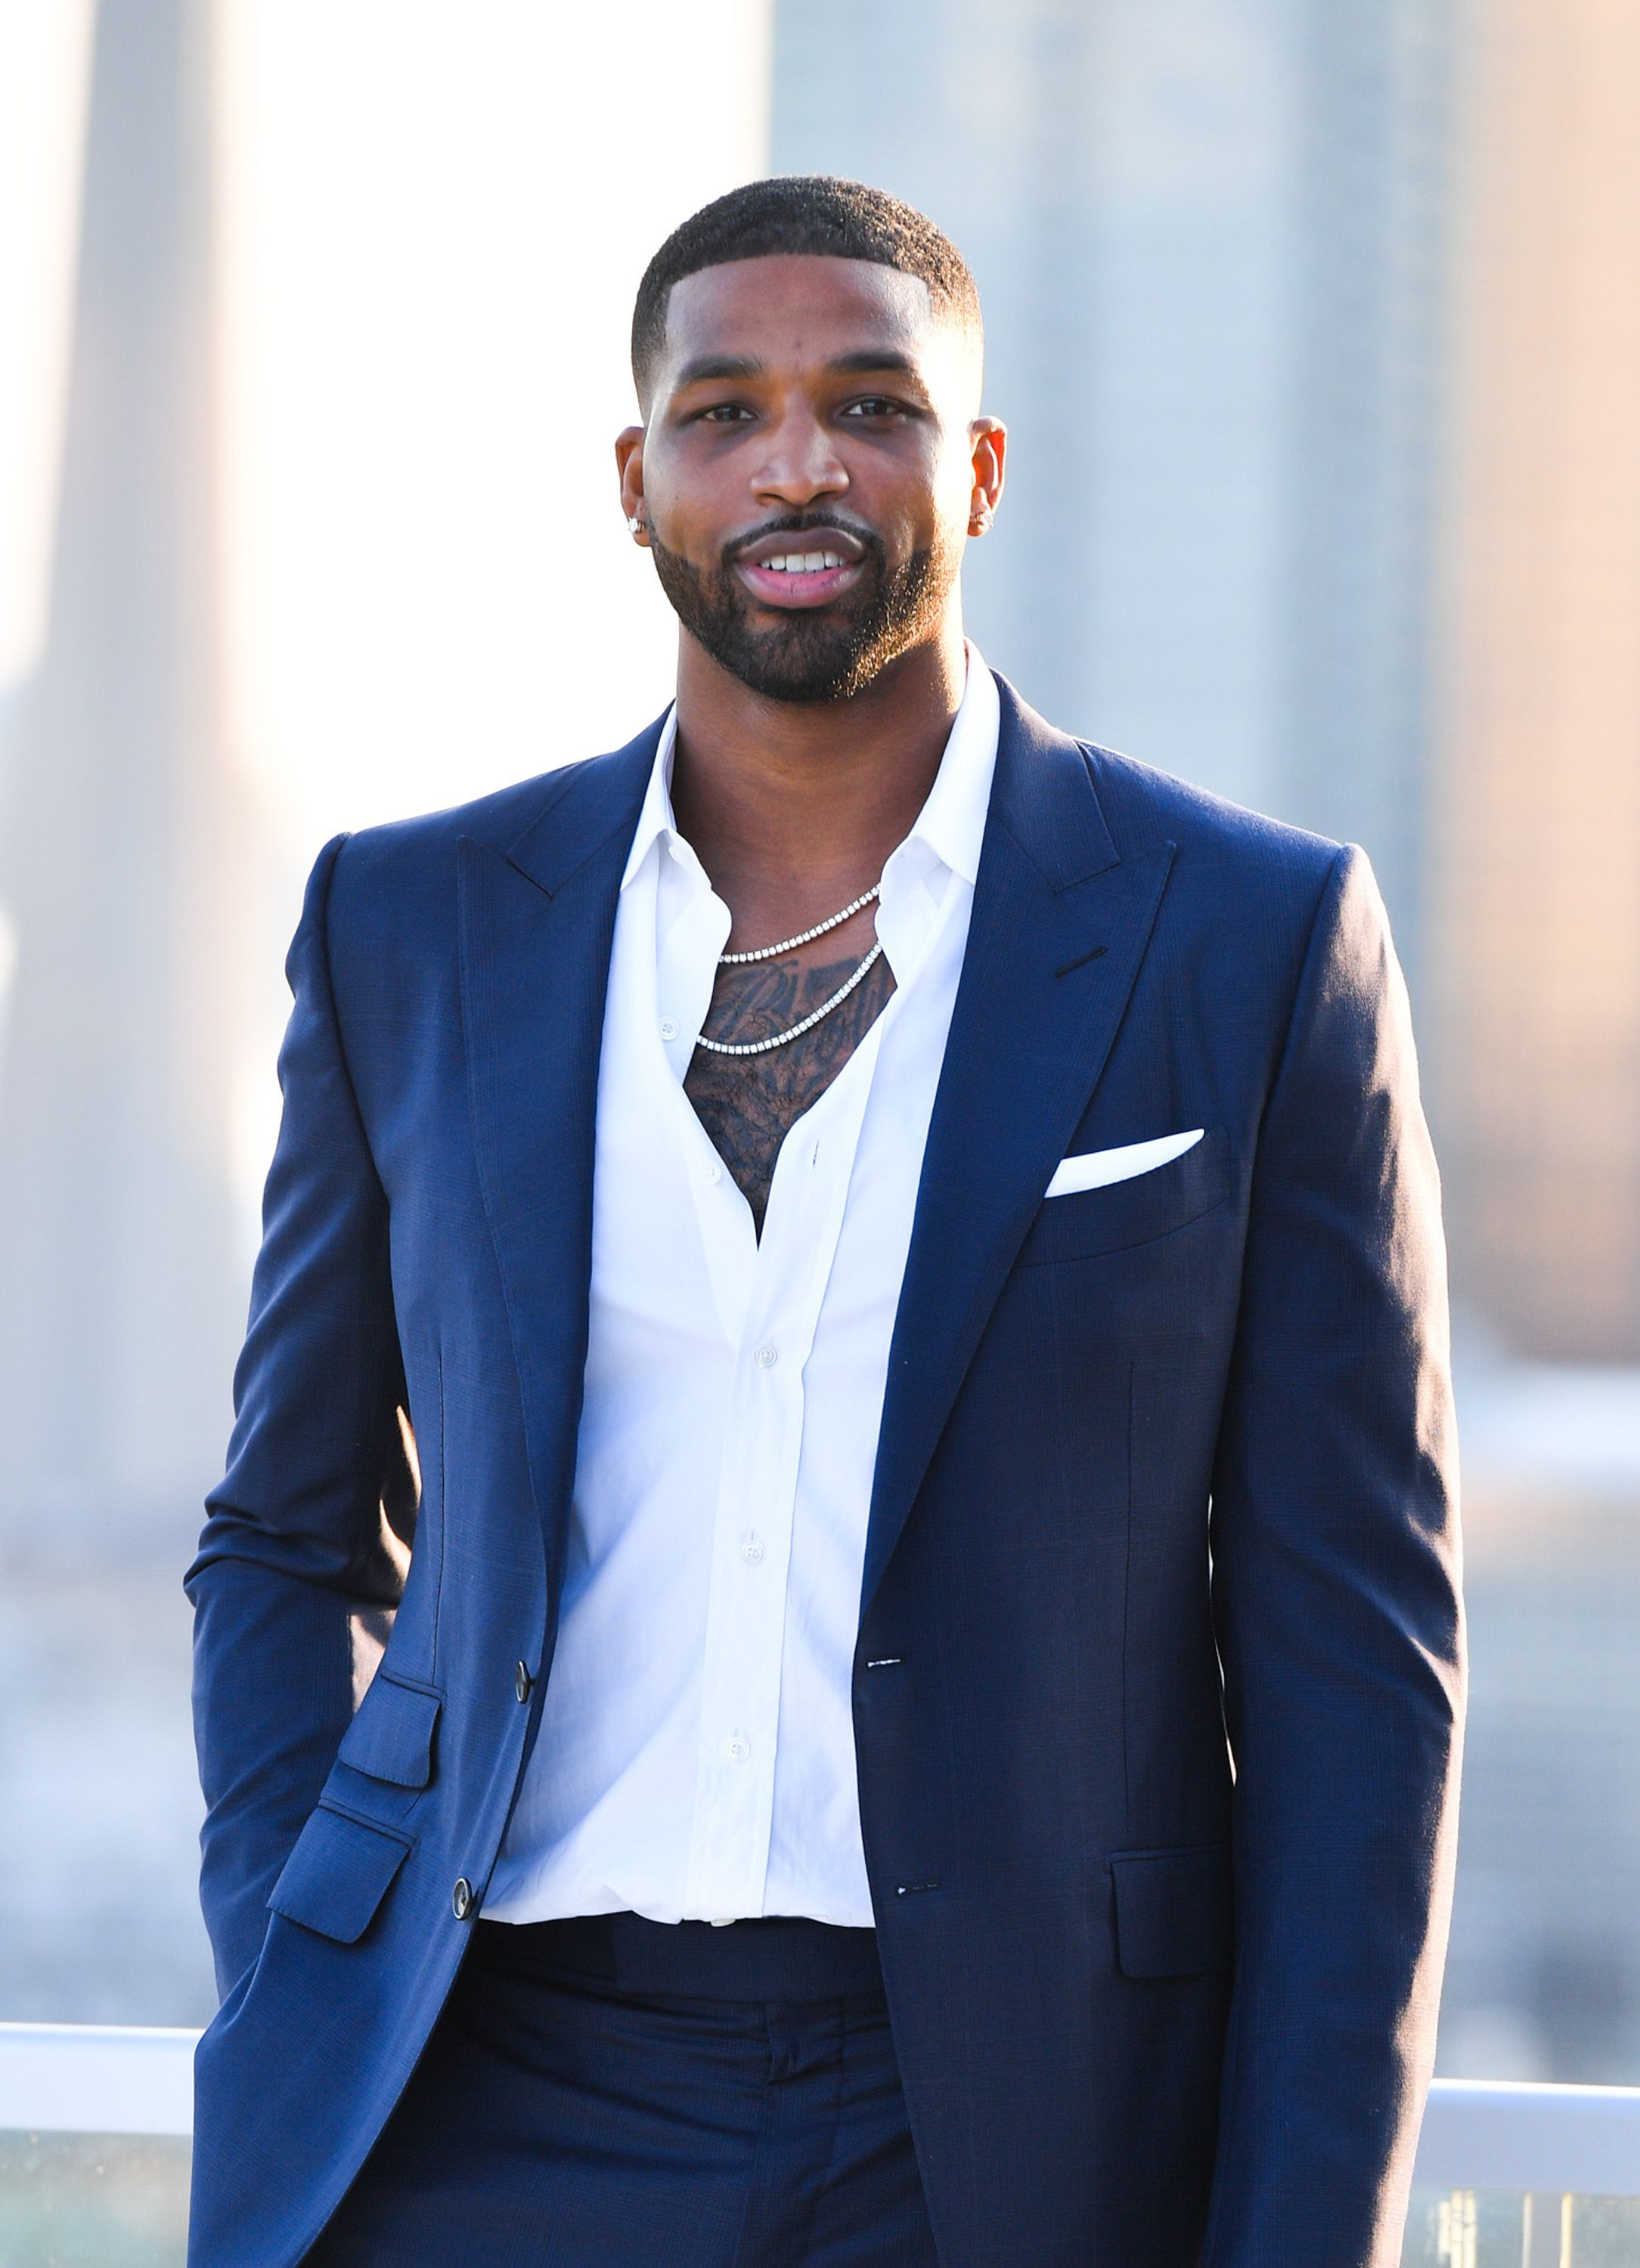 Tristan Thompson at The Amari Thompson Soiree held at The Globe and Mail Centre on August 01, 2019, in Toronto, Canada. Photo George Pimentel Getty Images